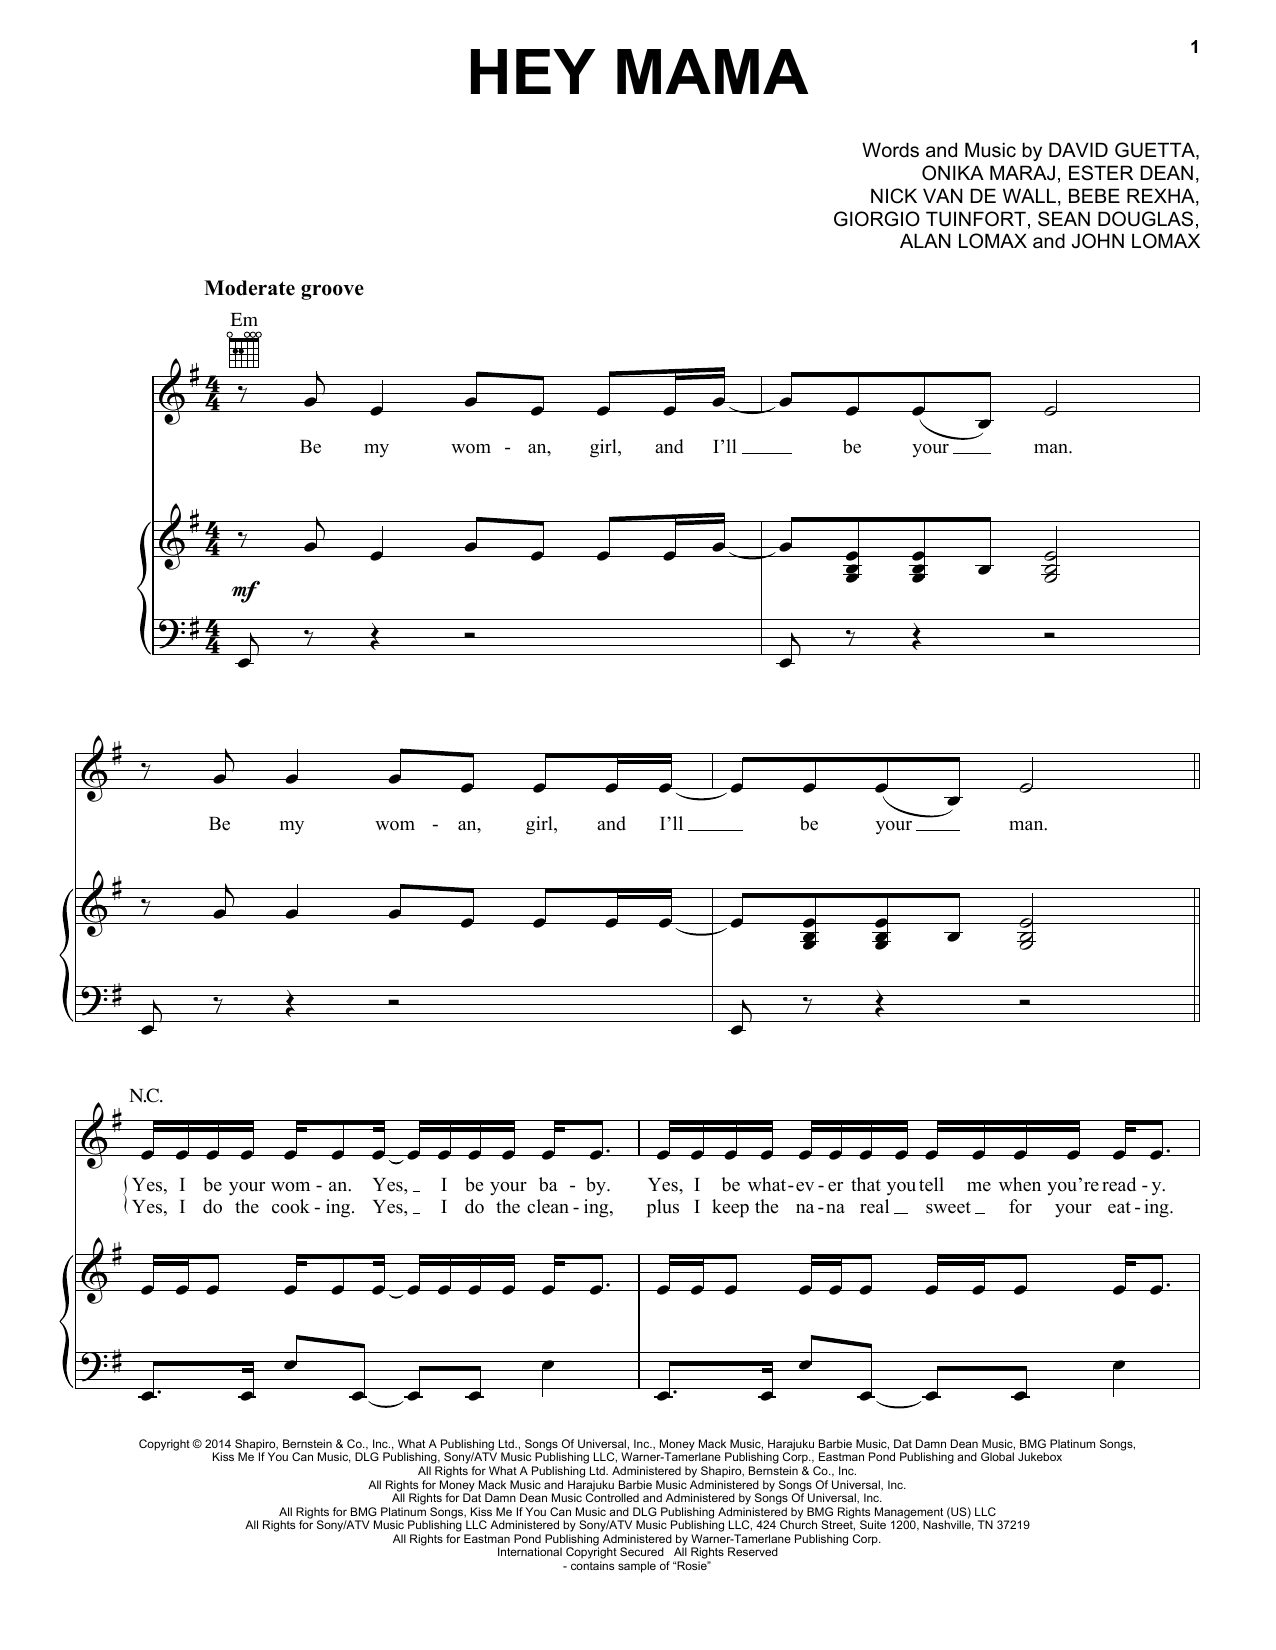 Hey Mama (feat. Nicki Minaj & Afrojack) Sheet Music